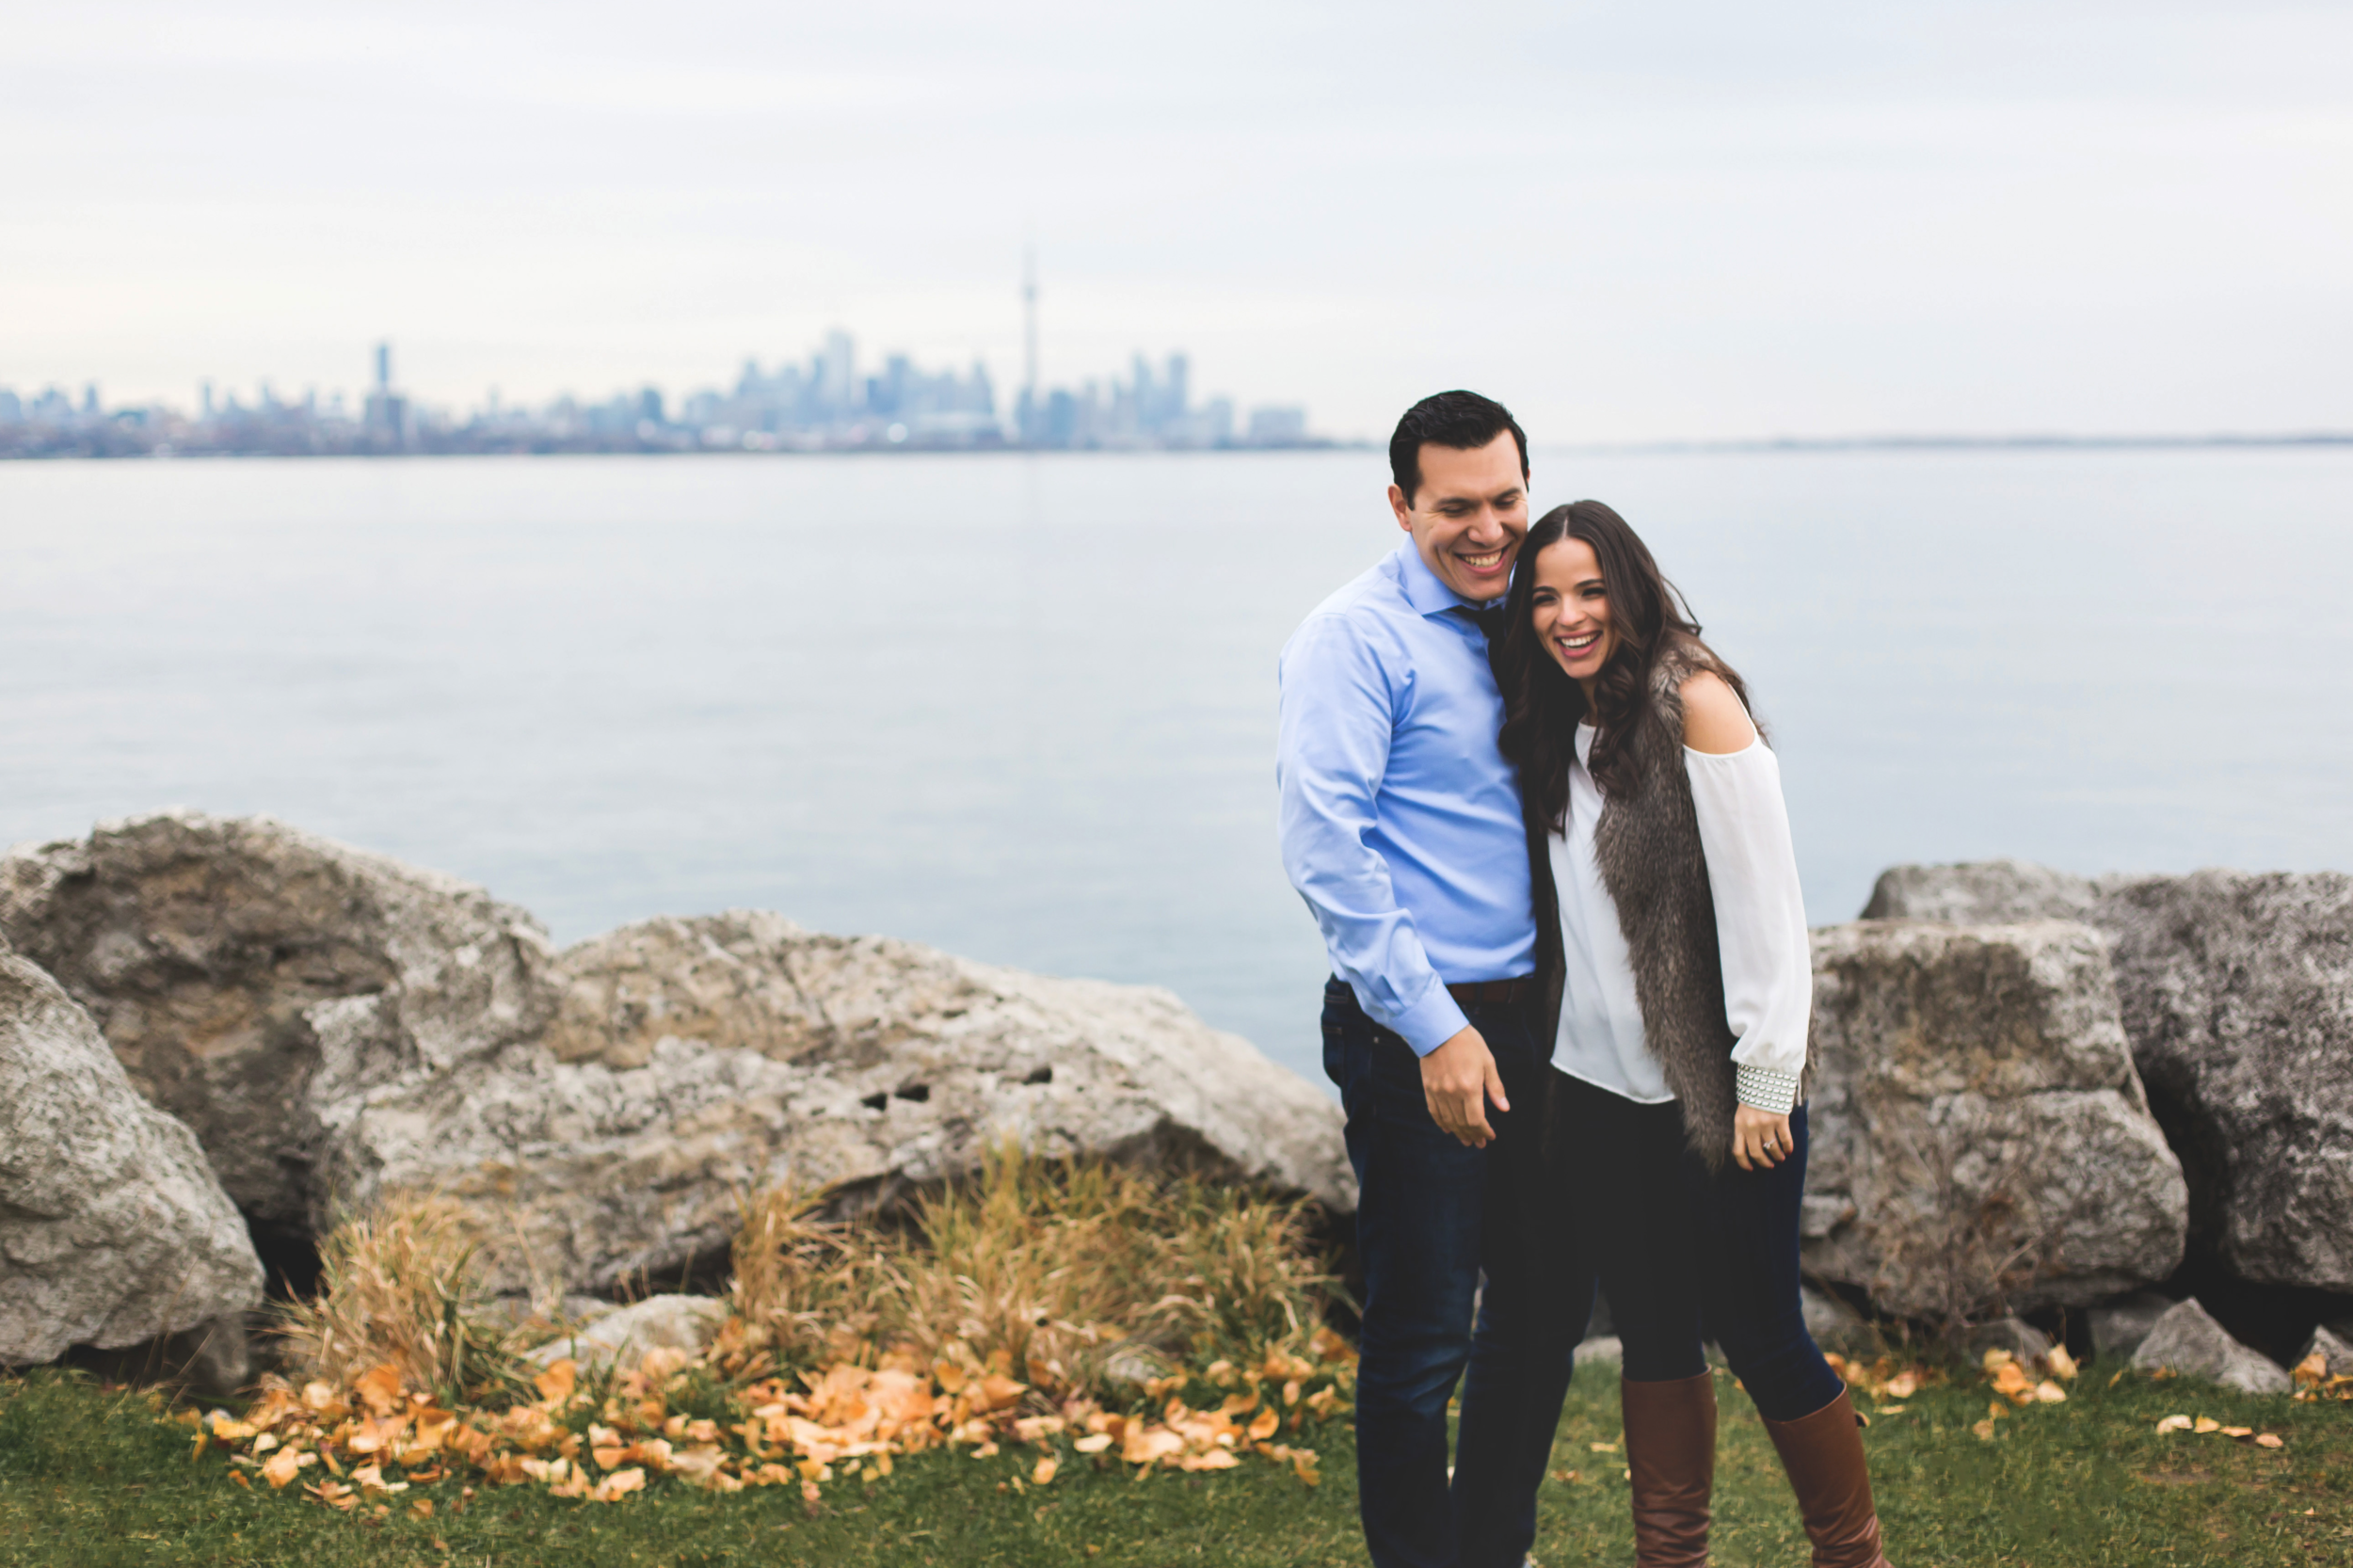 Engagement-Photography-Toronto-Skyline-City-Waterfront-HumberBay-Hamilton-Burlington-Oakville-Niagara-Toronto-Wedding-Photographer-Photo-Image-13.png